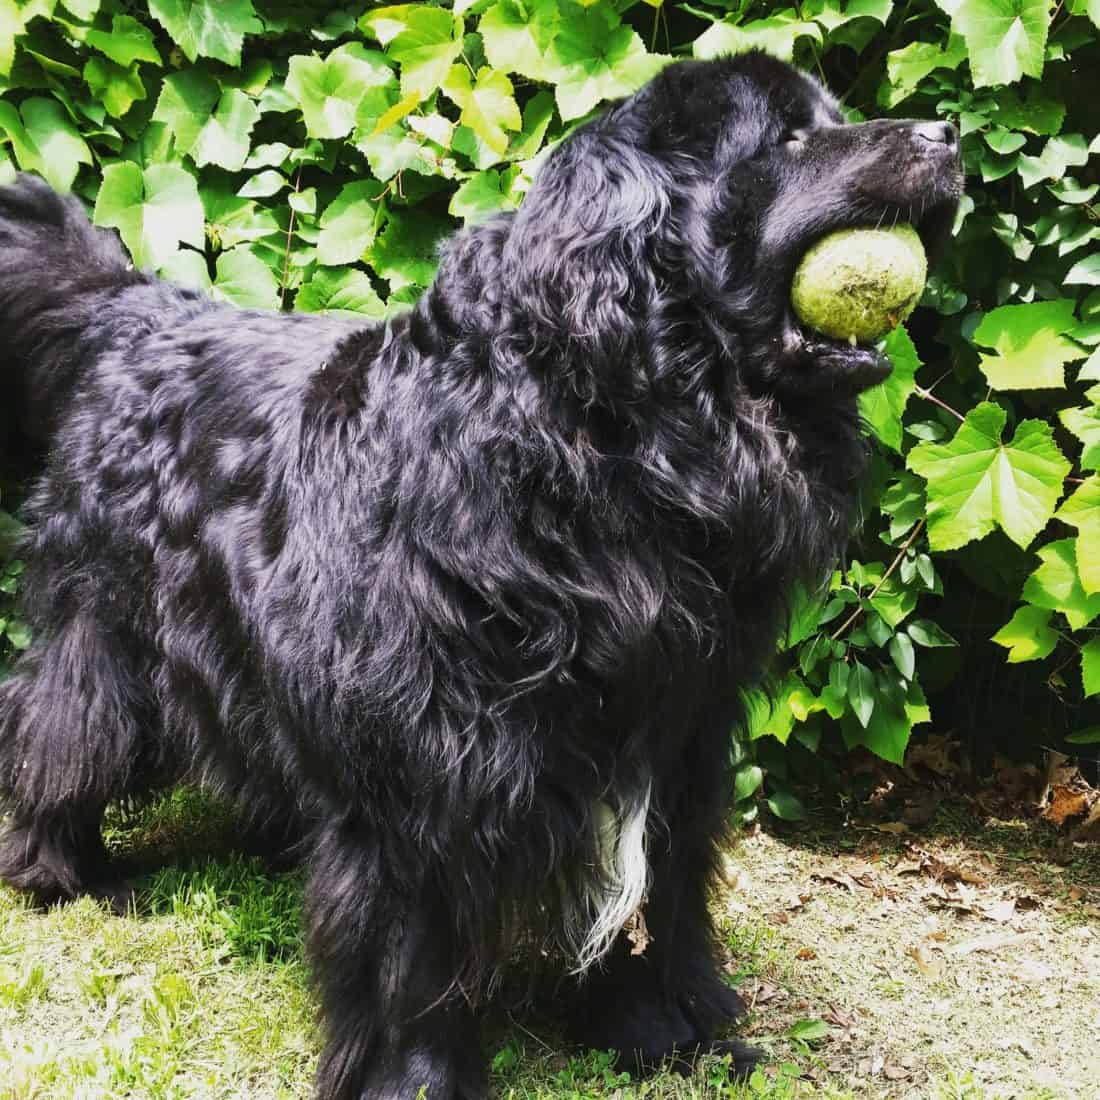 Black dog with tennis ball in mouth.